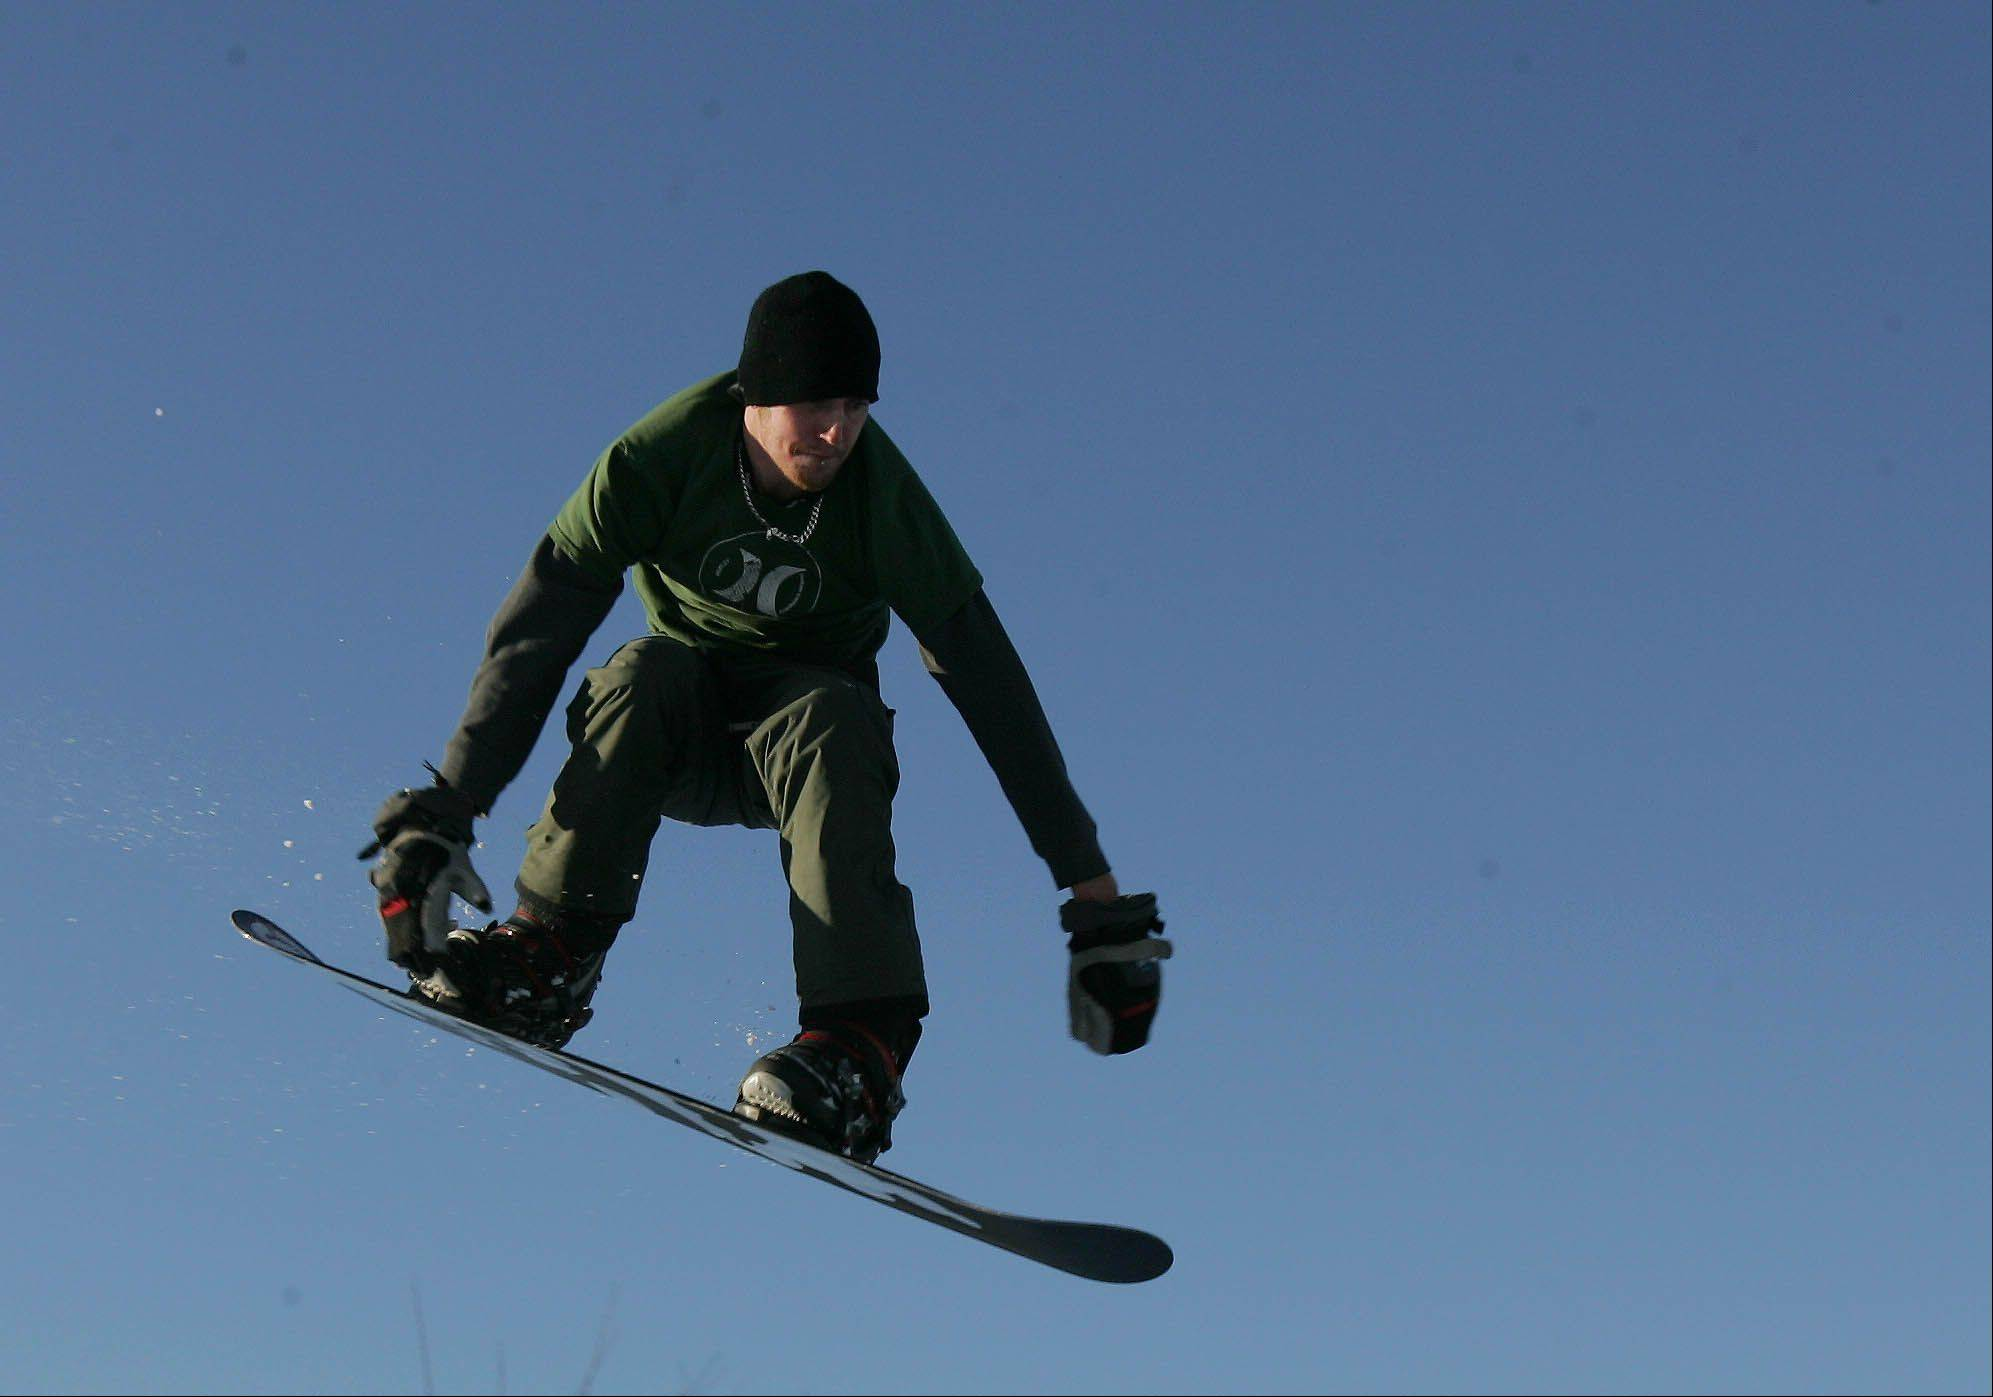 Snowboarders have a home at Four Lakes, and those who want to learn the sport can take lessons.